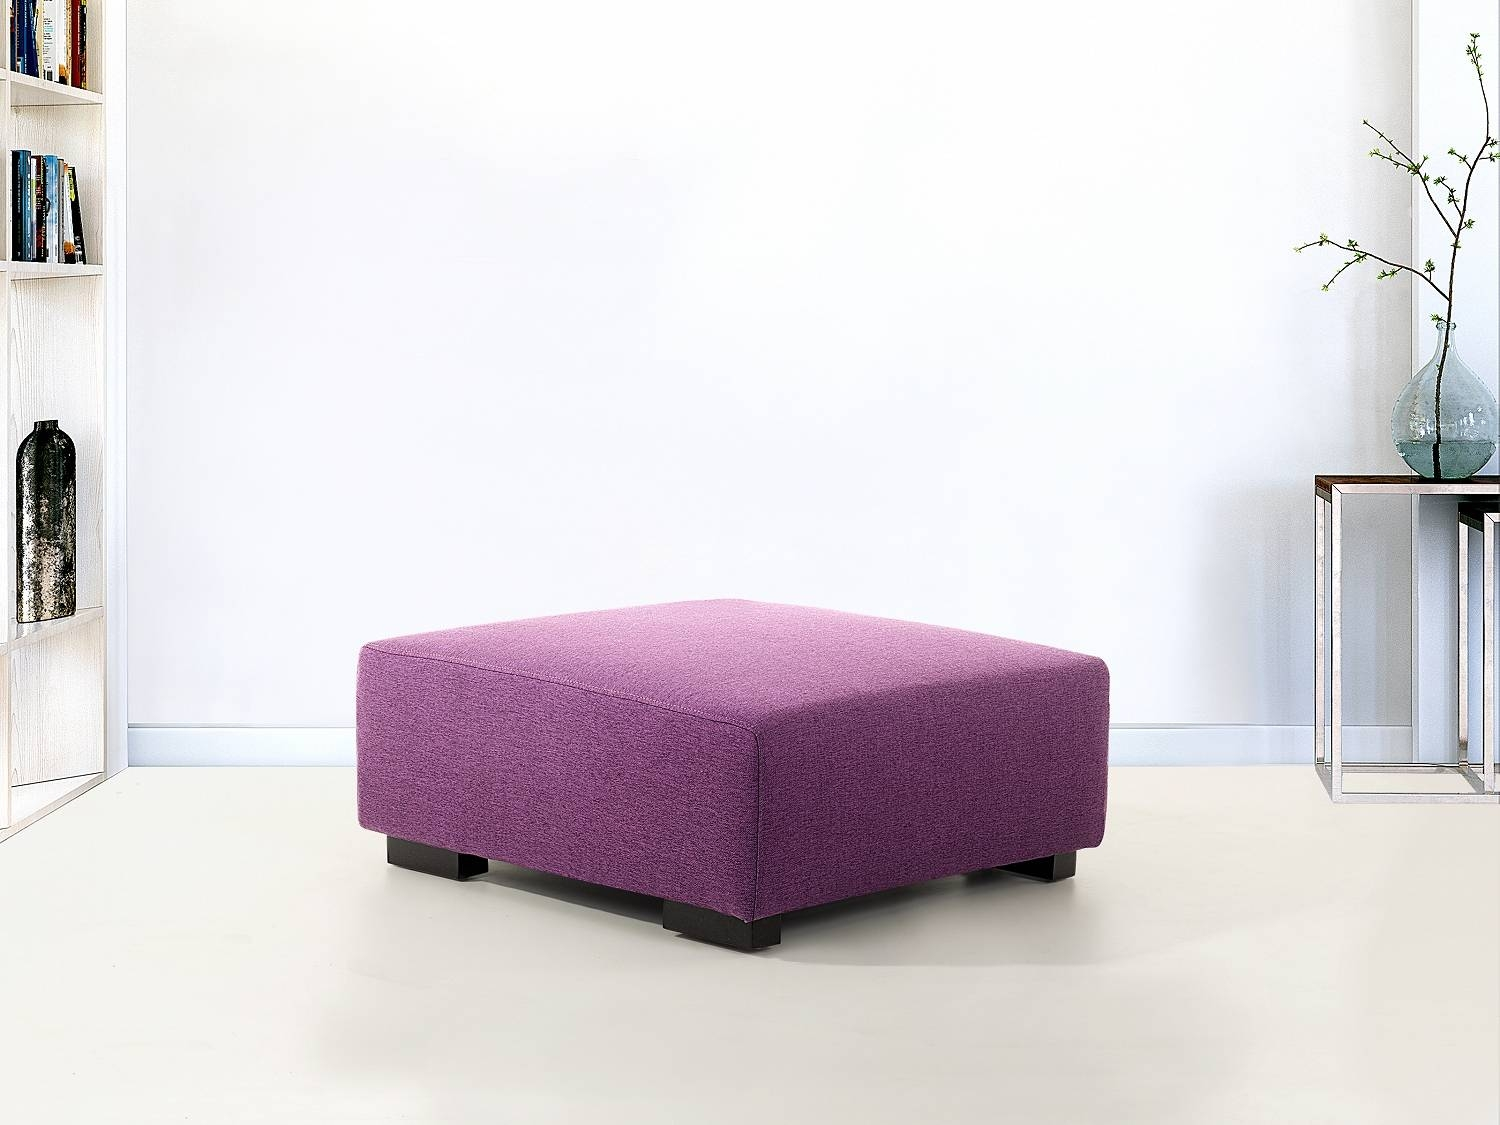 Purple Living Room Coffee Table Ottoman Designs - Decor Crave for Purple Ottoman Coffee Tables (Image 24 of 30)